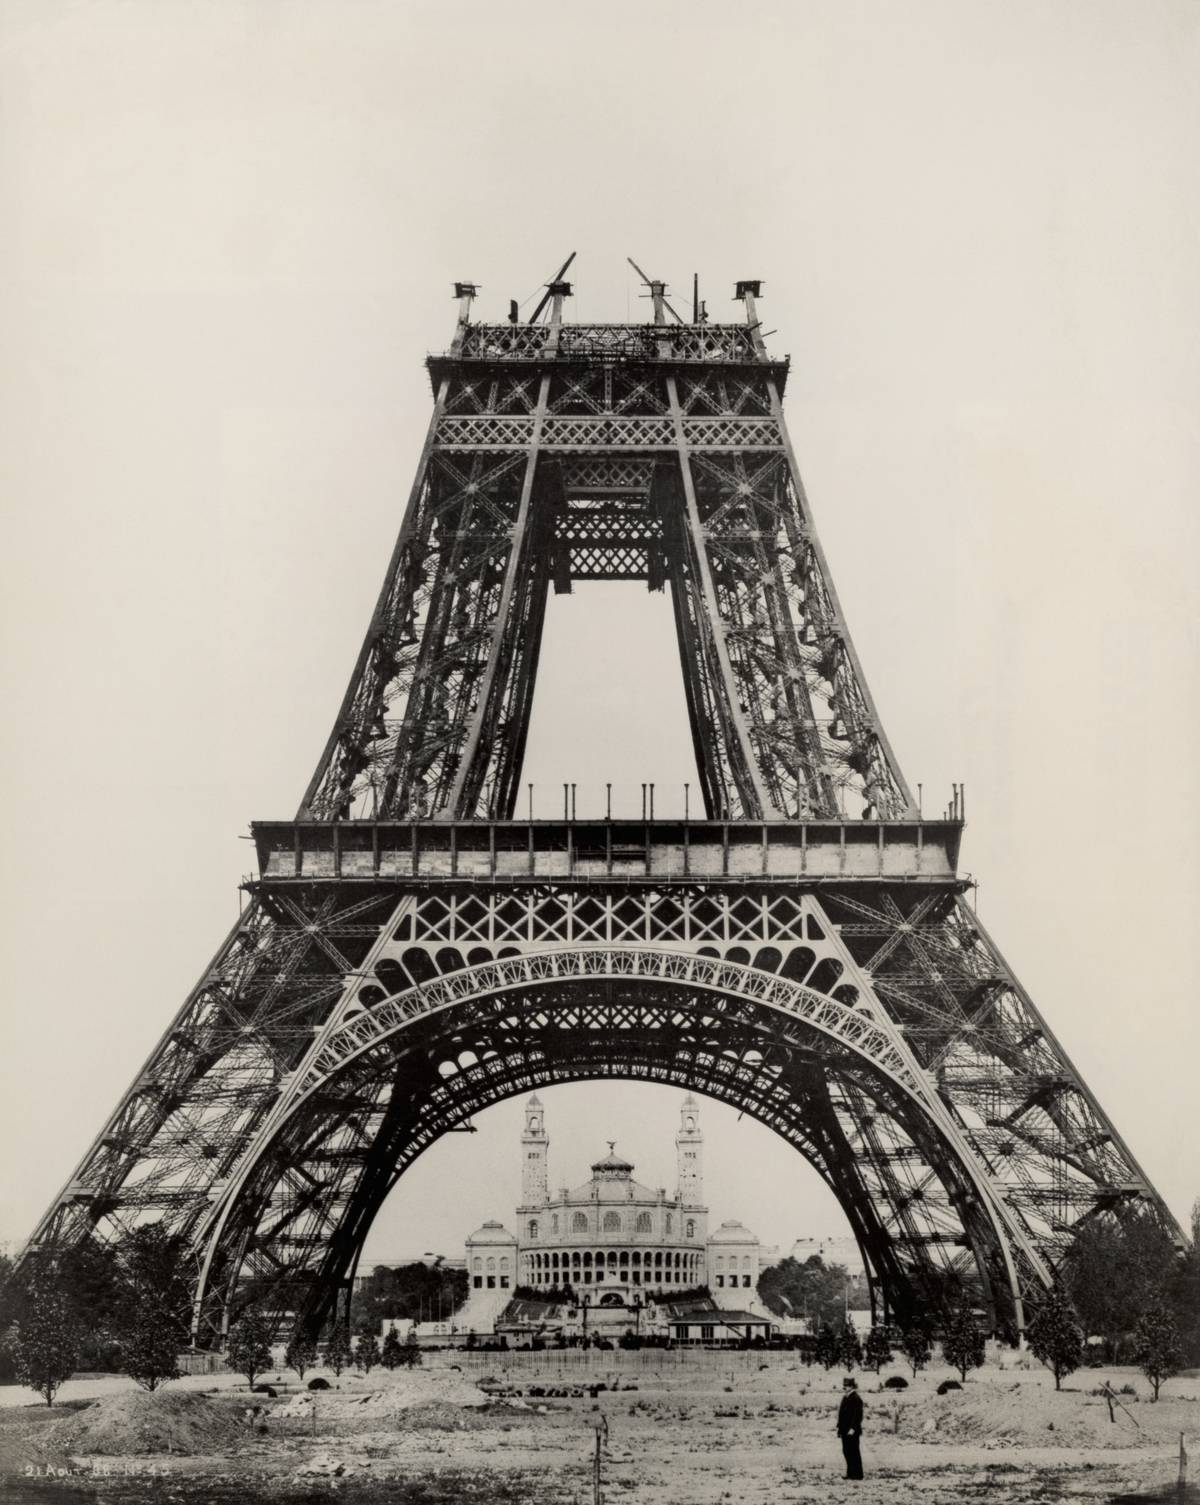 Gustave Eiffel stands at the base of the Eiffel Tower while it is under construction.